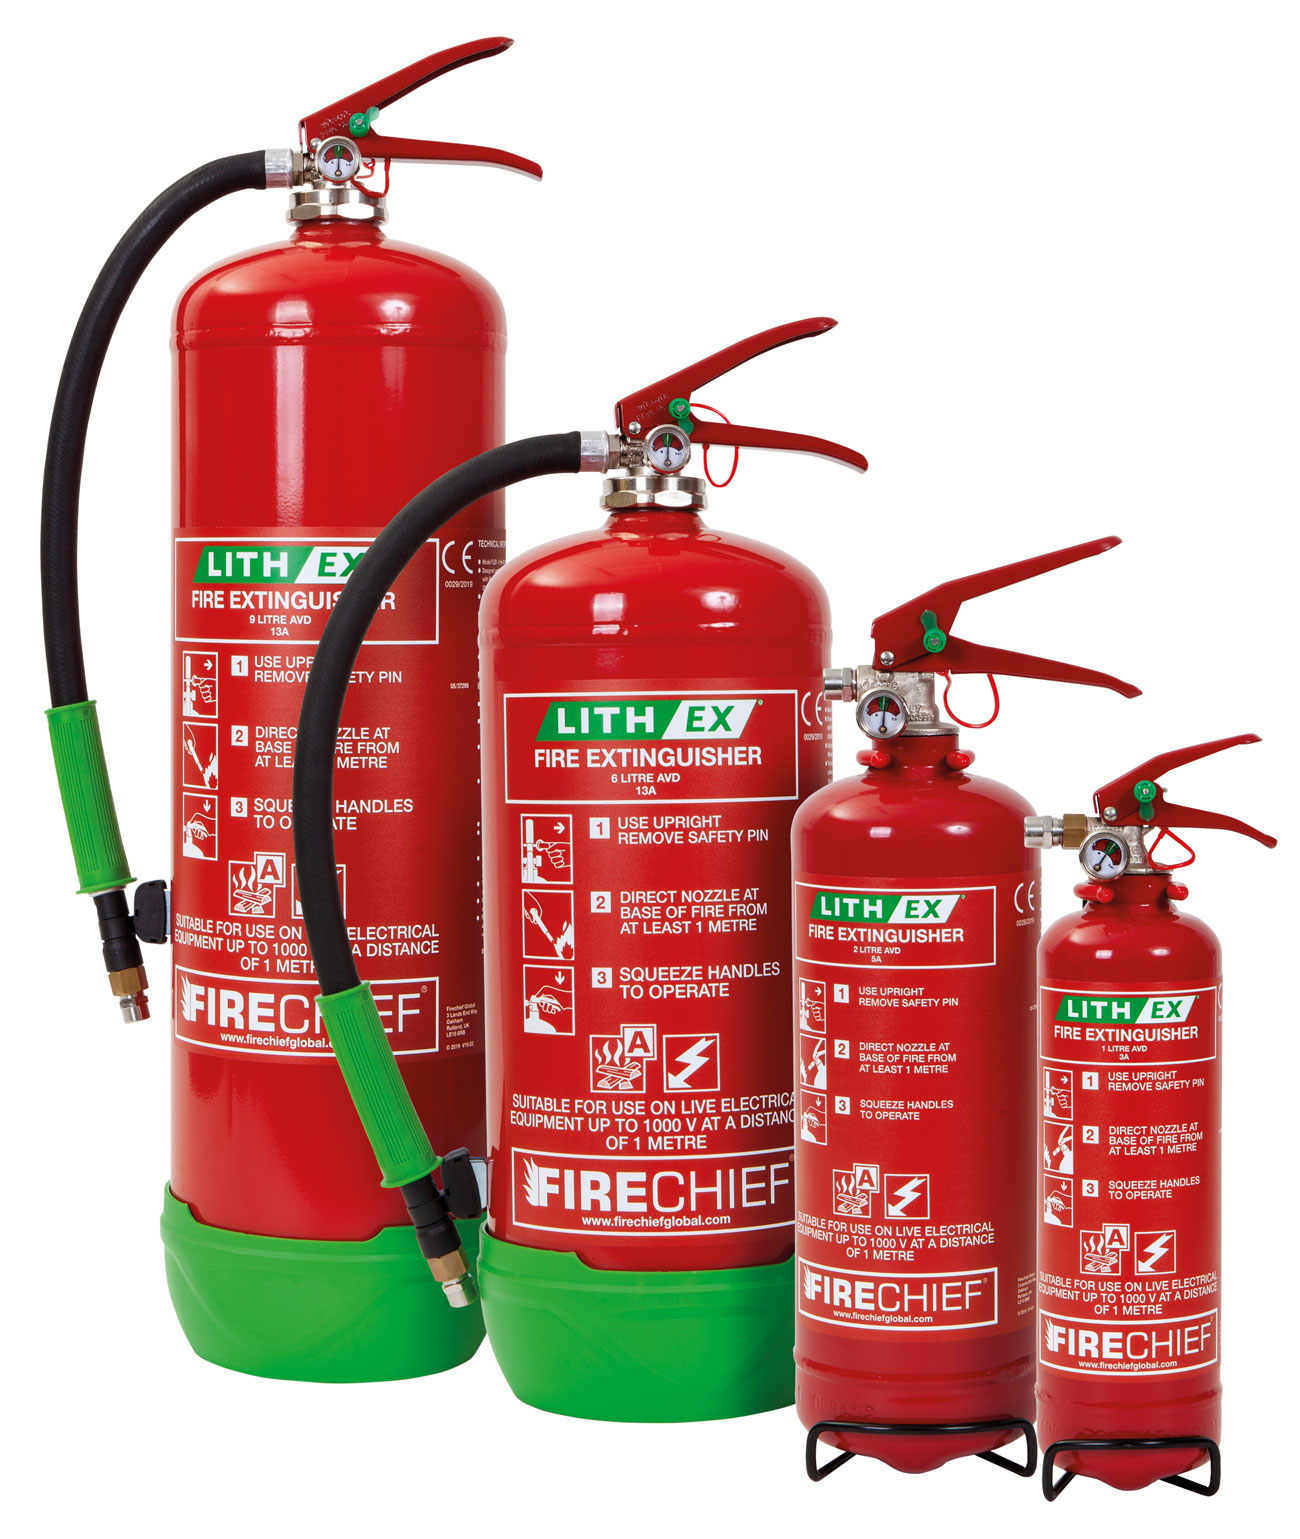 Firechief Lith-Ex range of extinguishers, available in 1, 2, 6 and 9L.